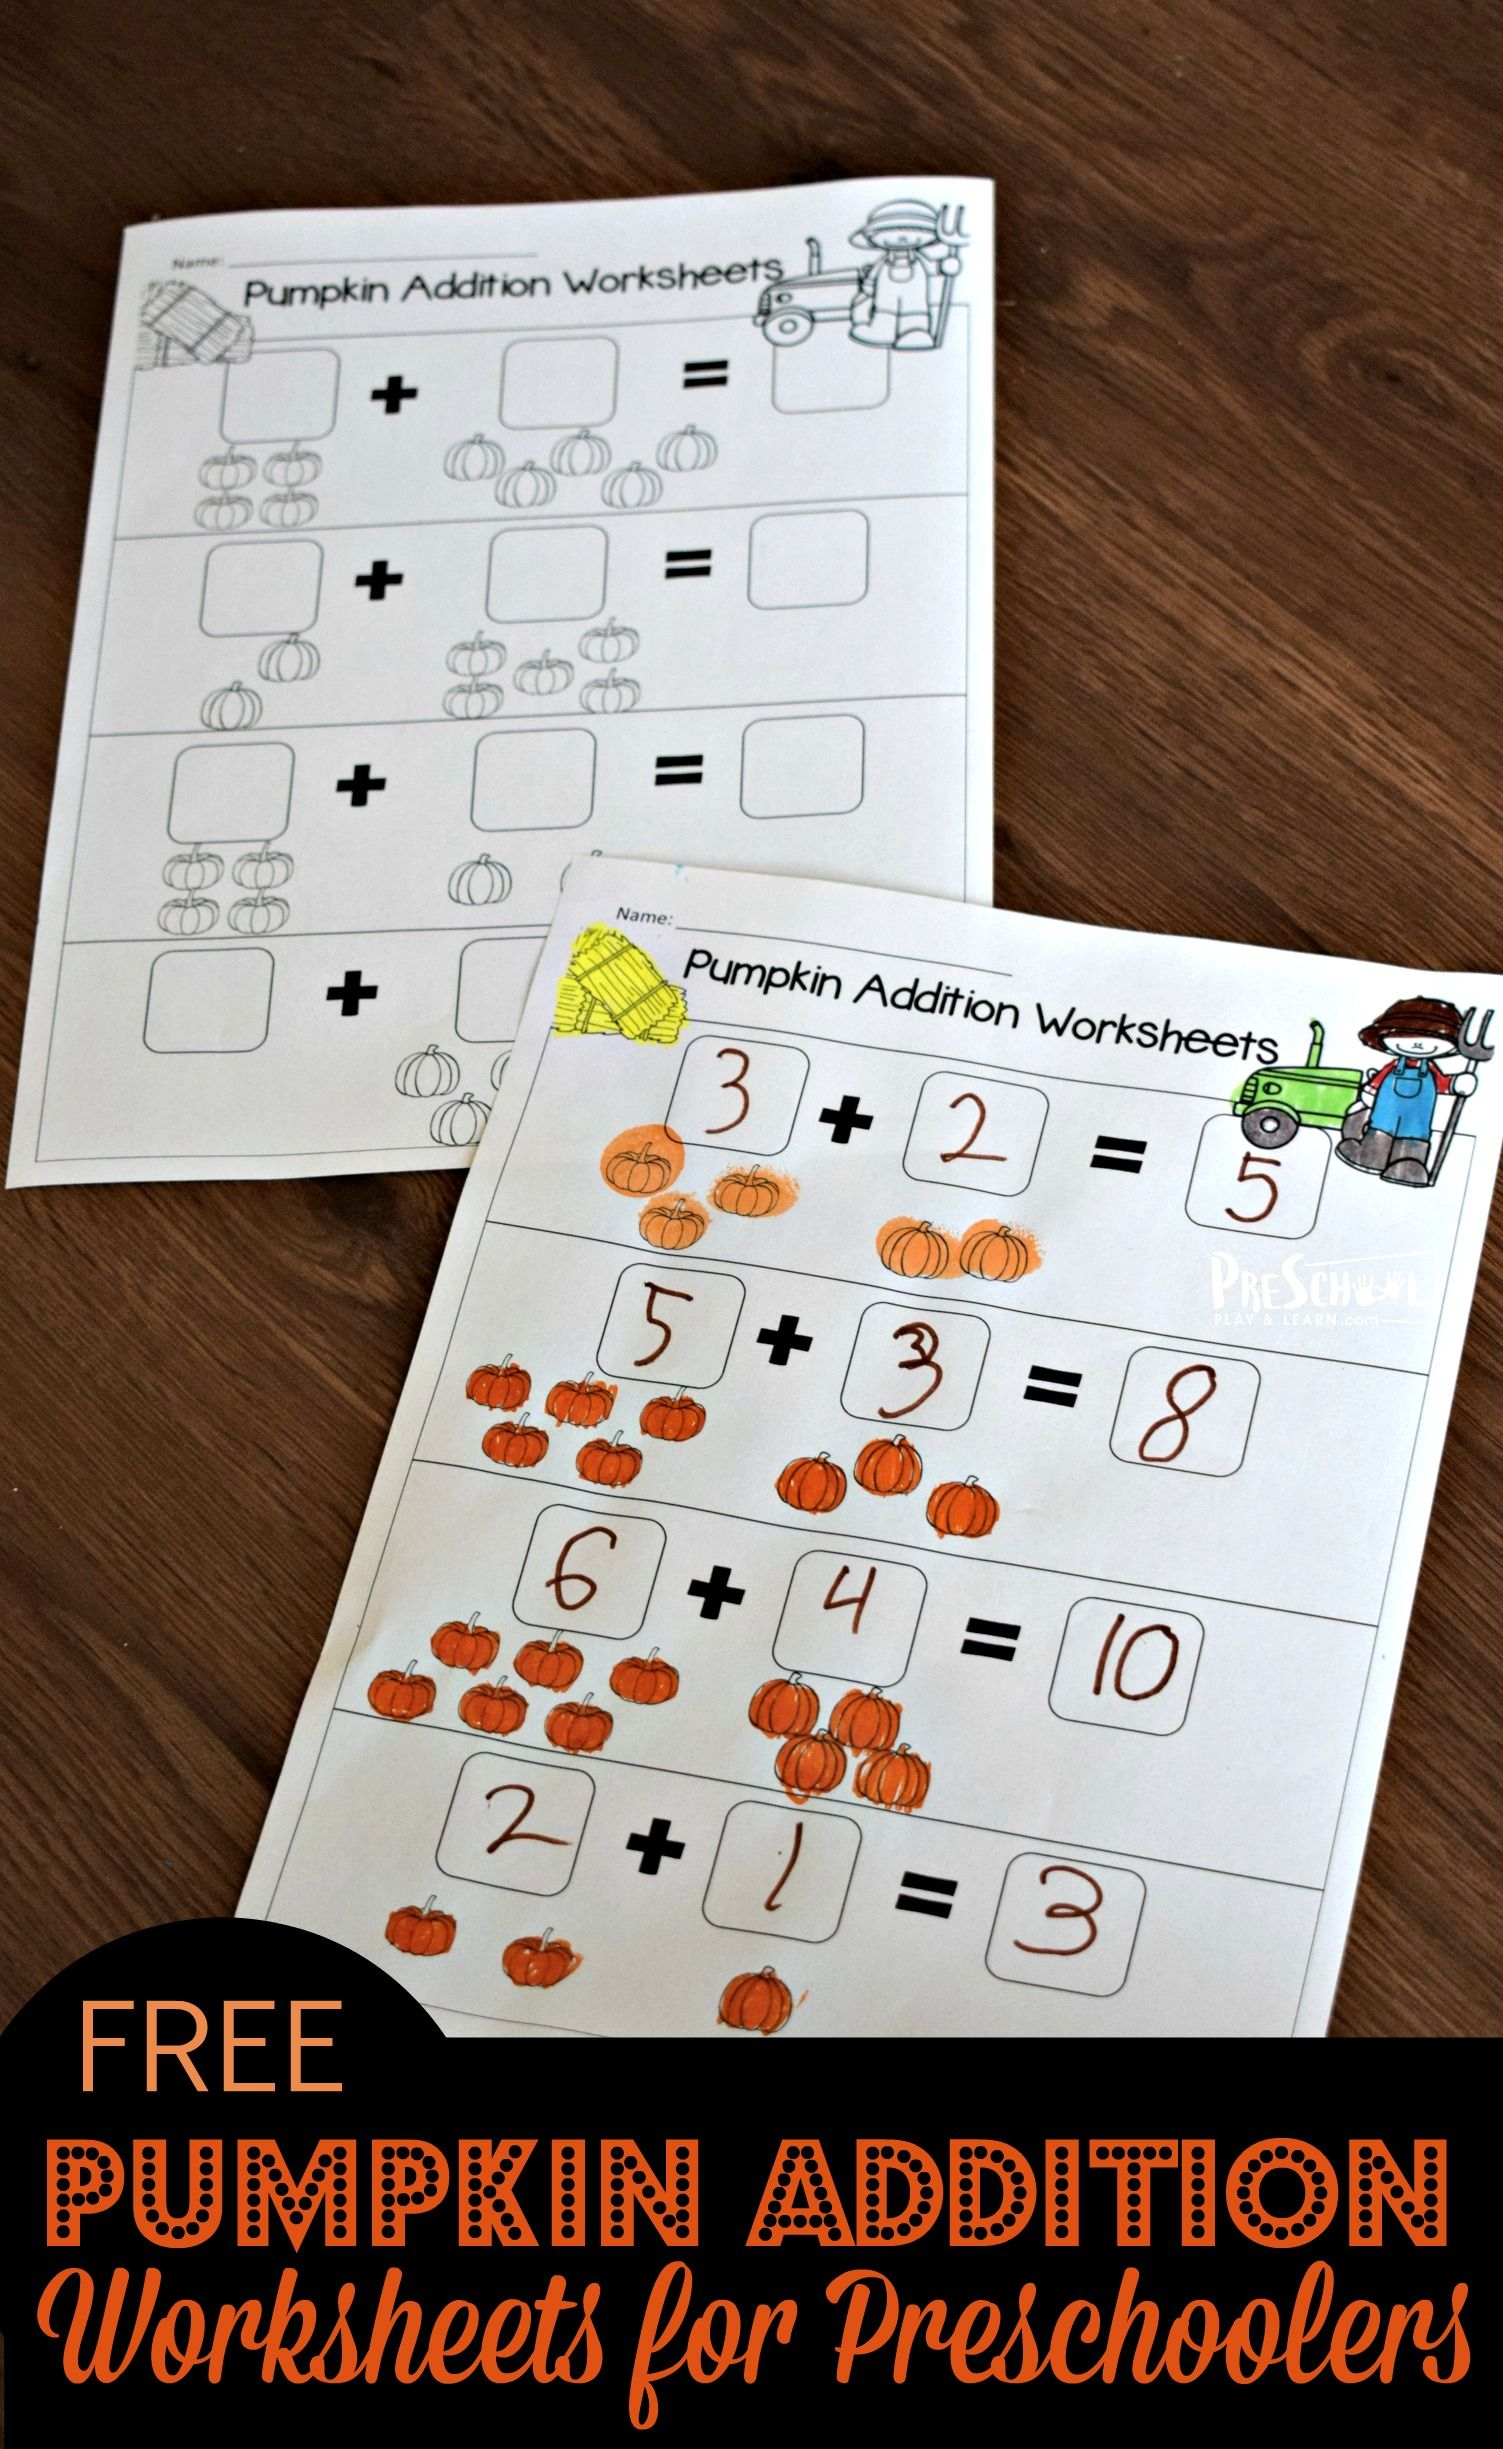 Free Pumpkin Addition Worksheets For Preschoolers